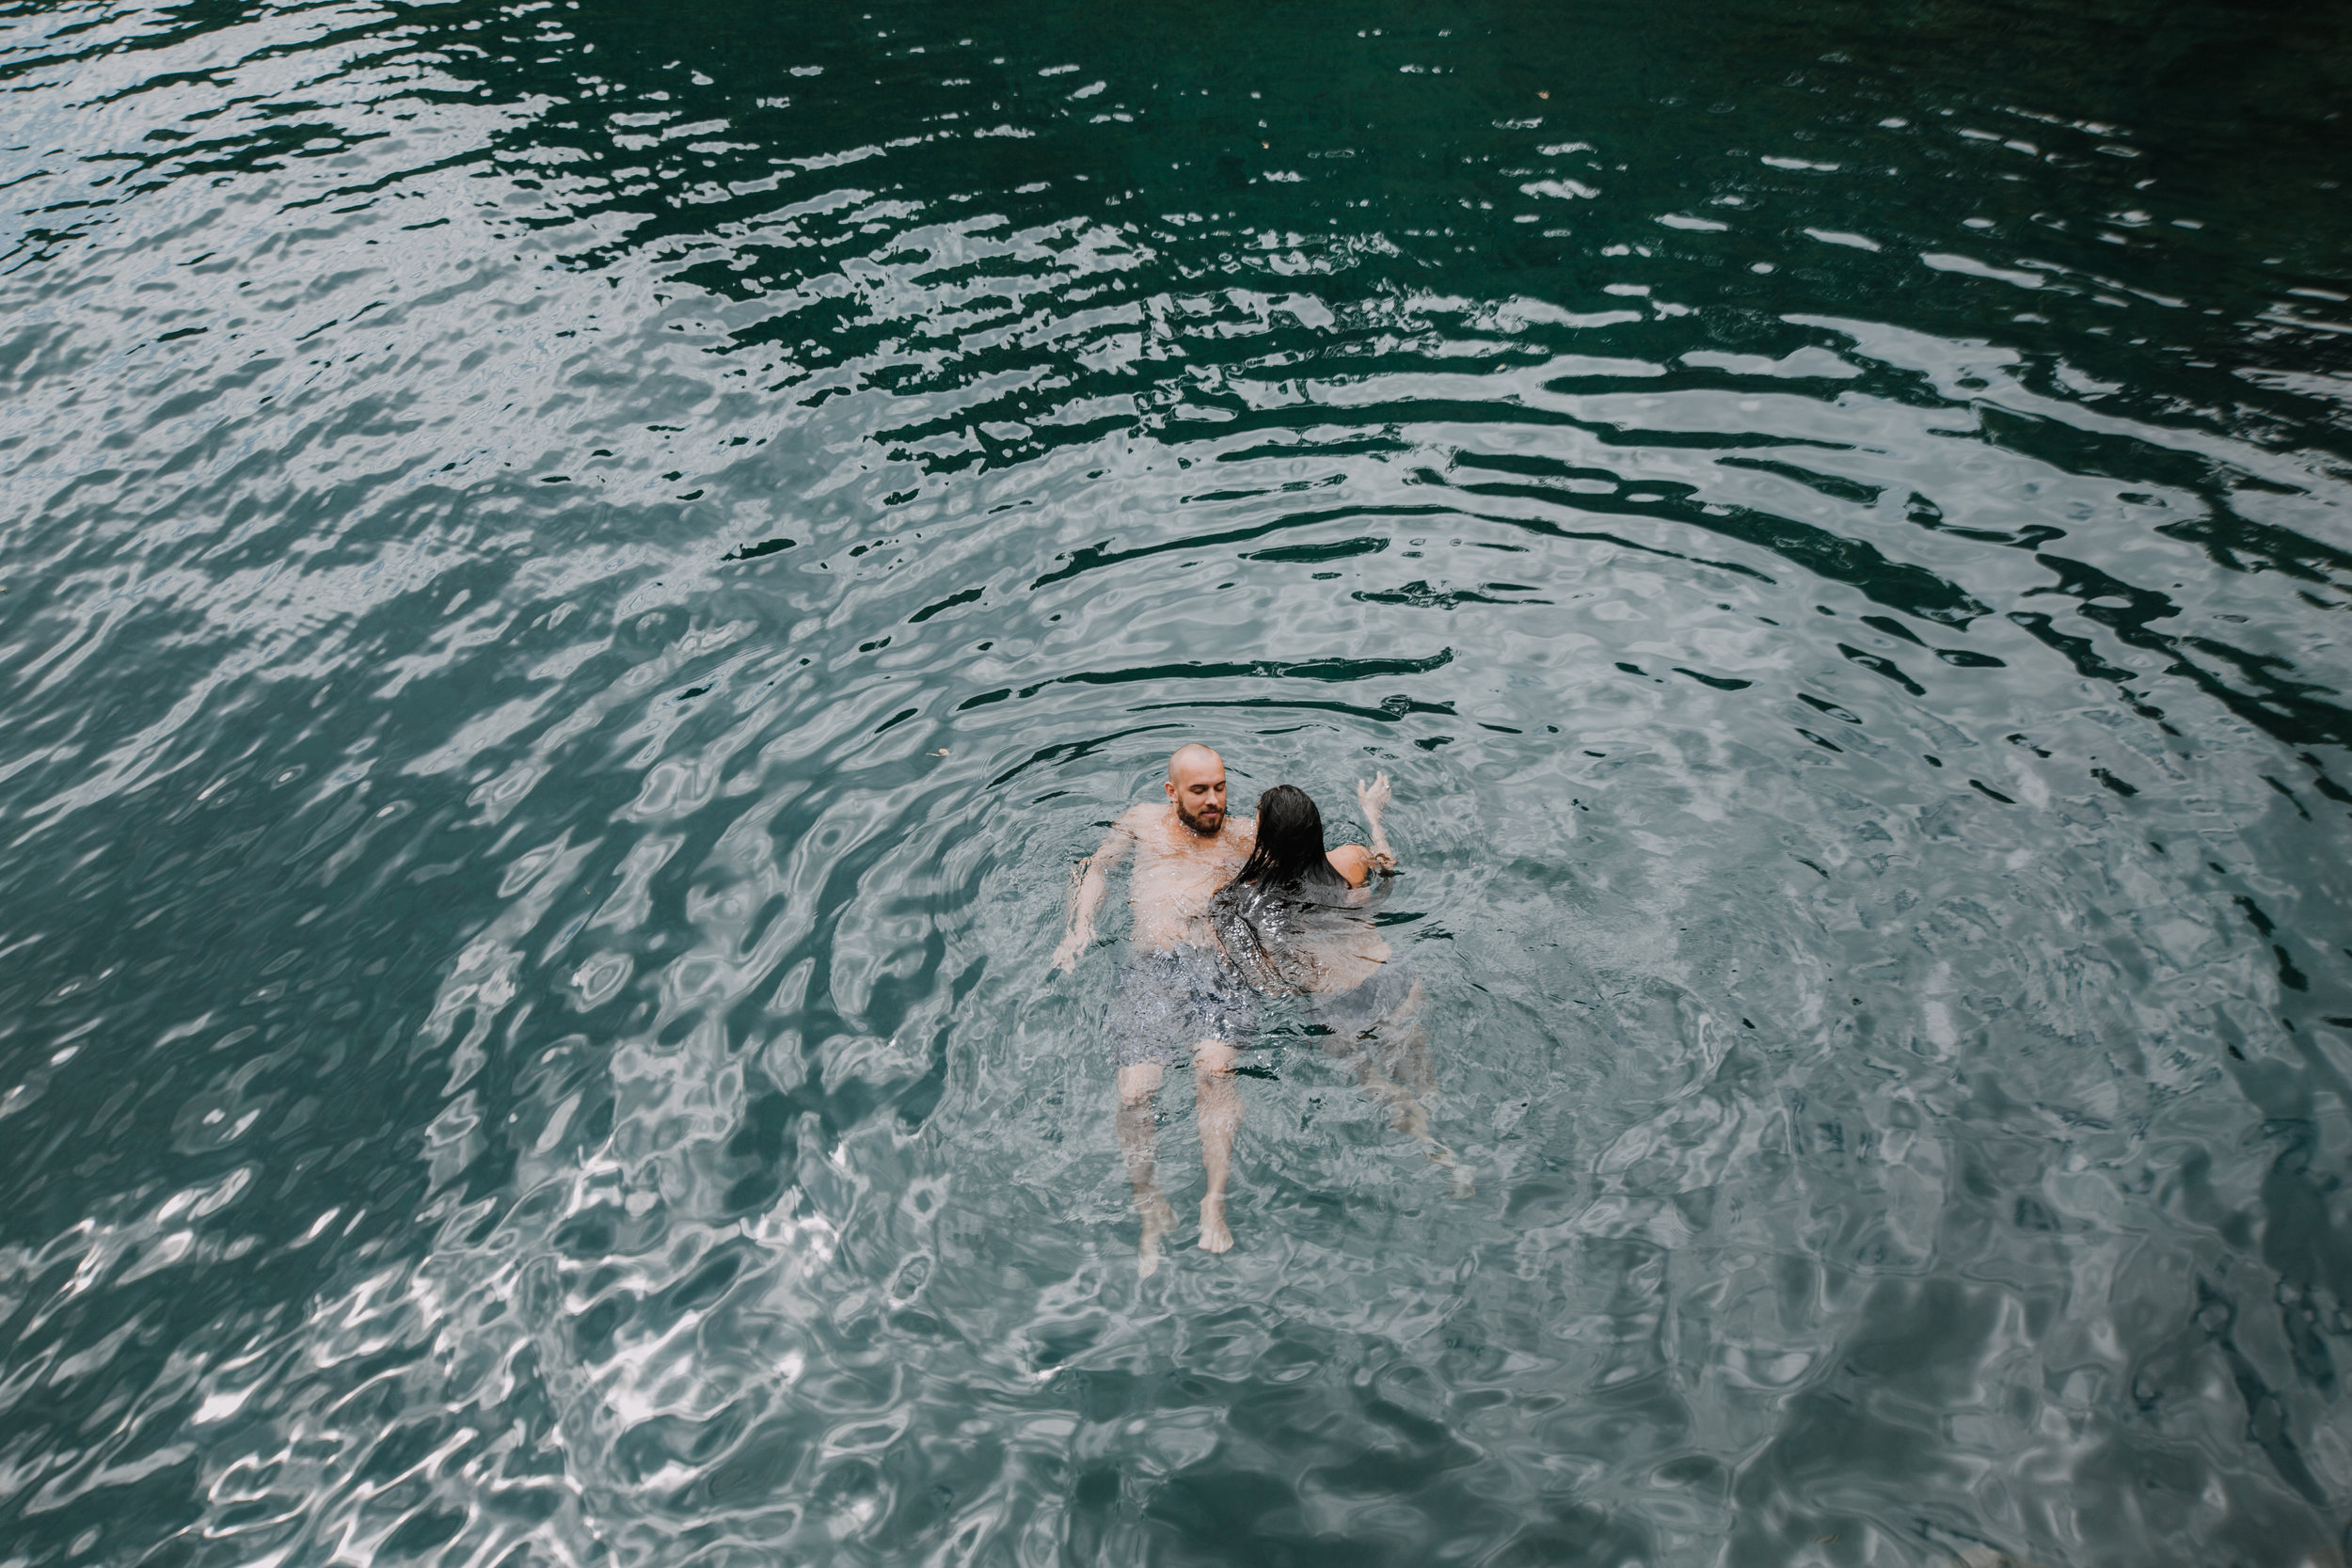 couple swimming, seven sacred pools at ohe'o, island hiking, road to hana, hawaii wedding photographer, hawaii elopement photographer, maui wedding, hana swimming, maui engagements, maui elopement